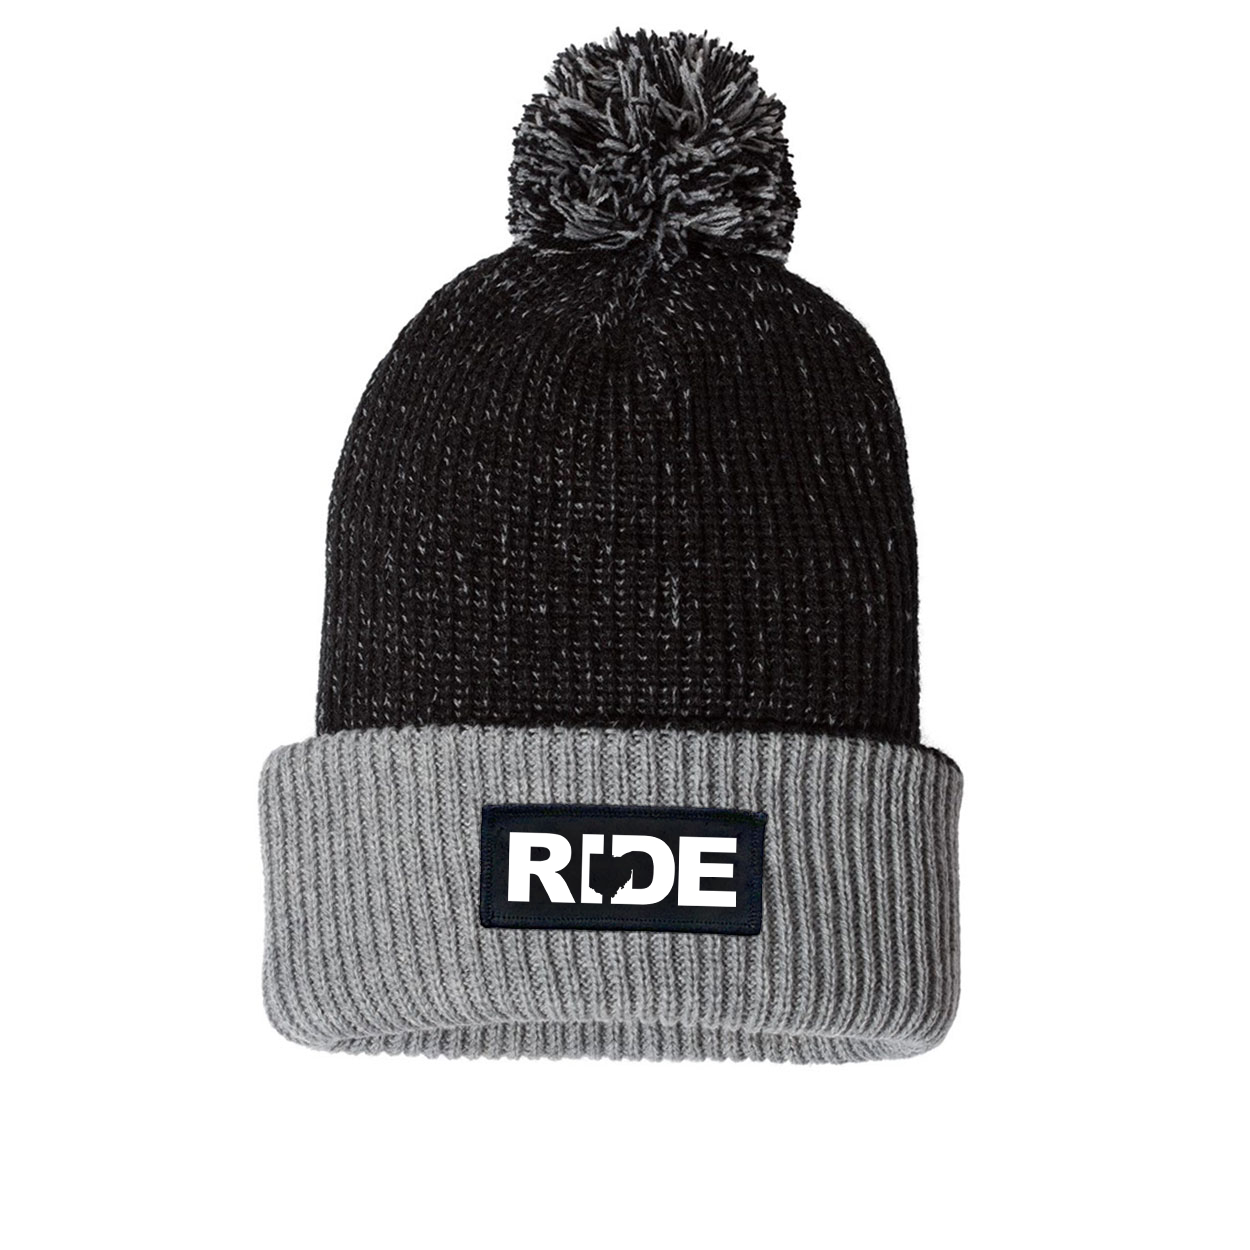 Ride Ohio Night Out Woven Patch Roll Up Pom Knit Beanie Black/Gray (White Logo)